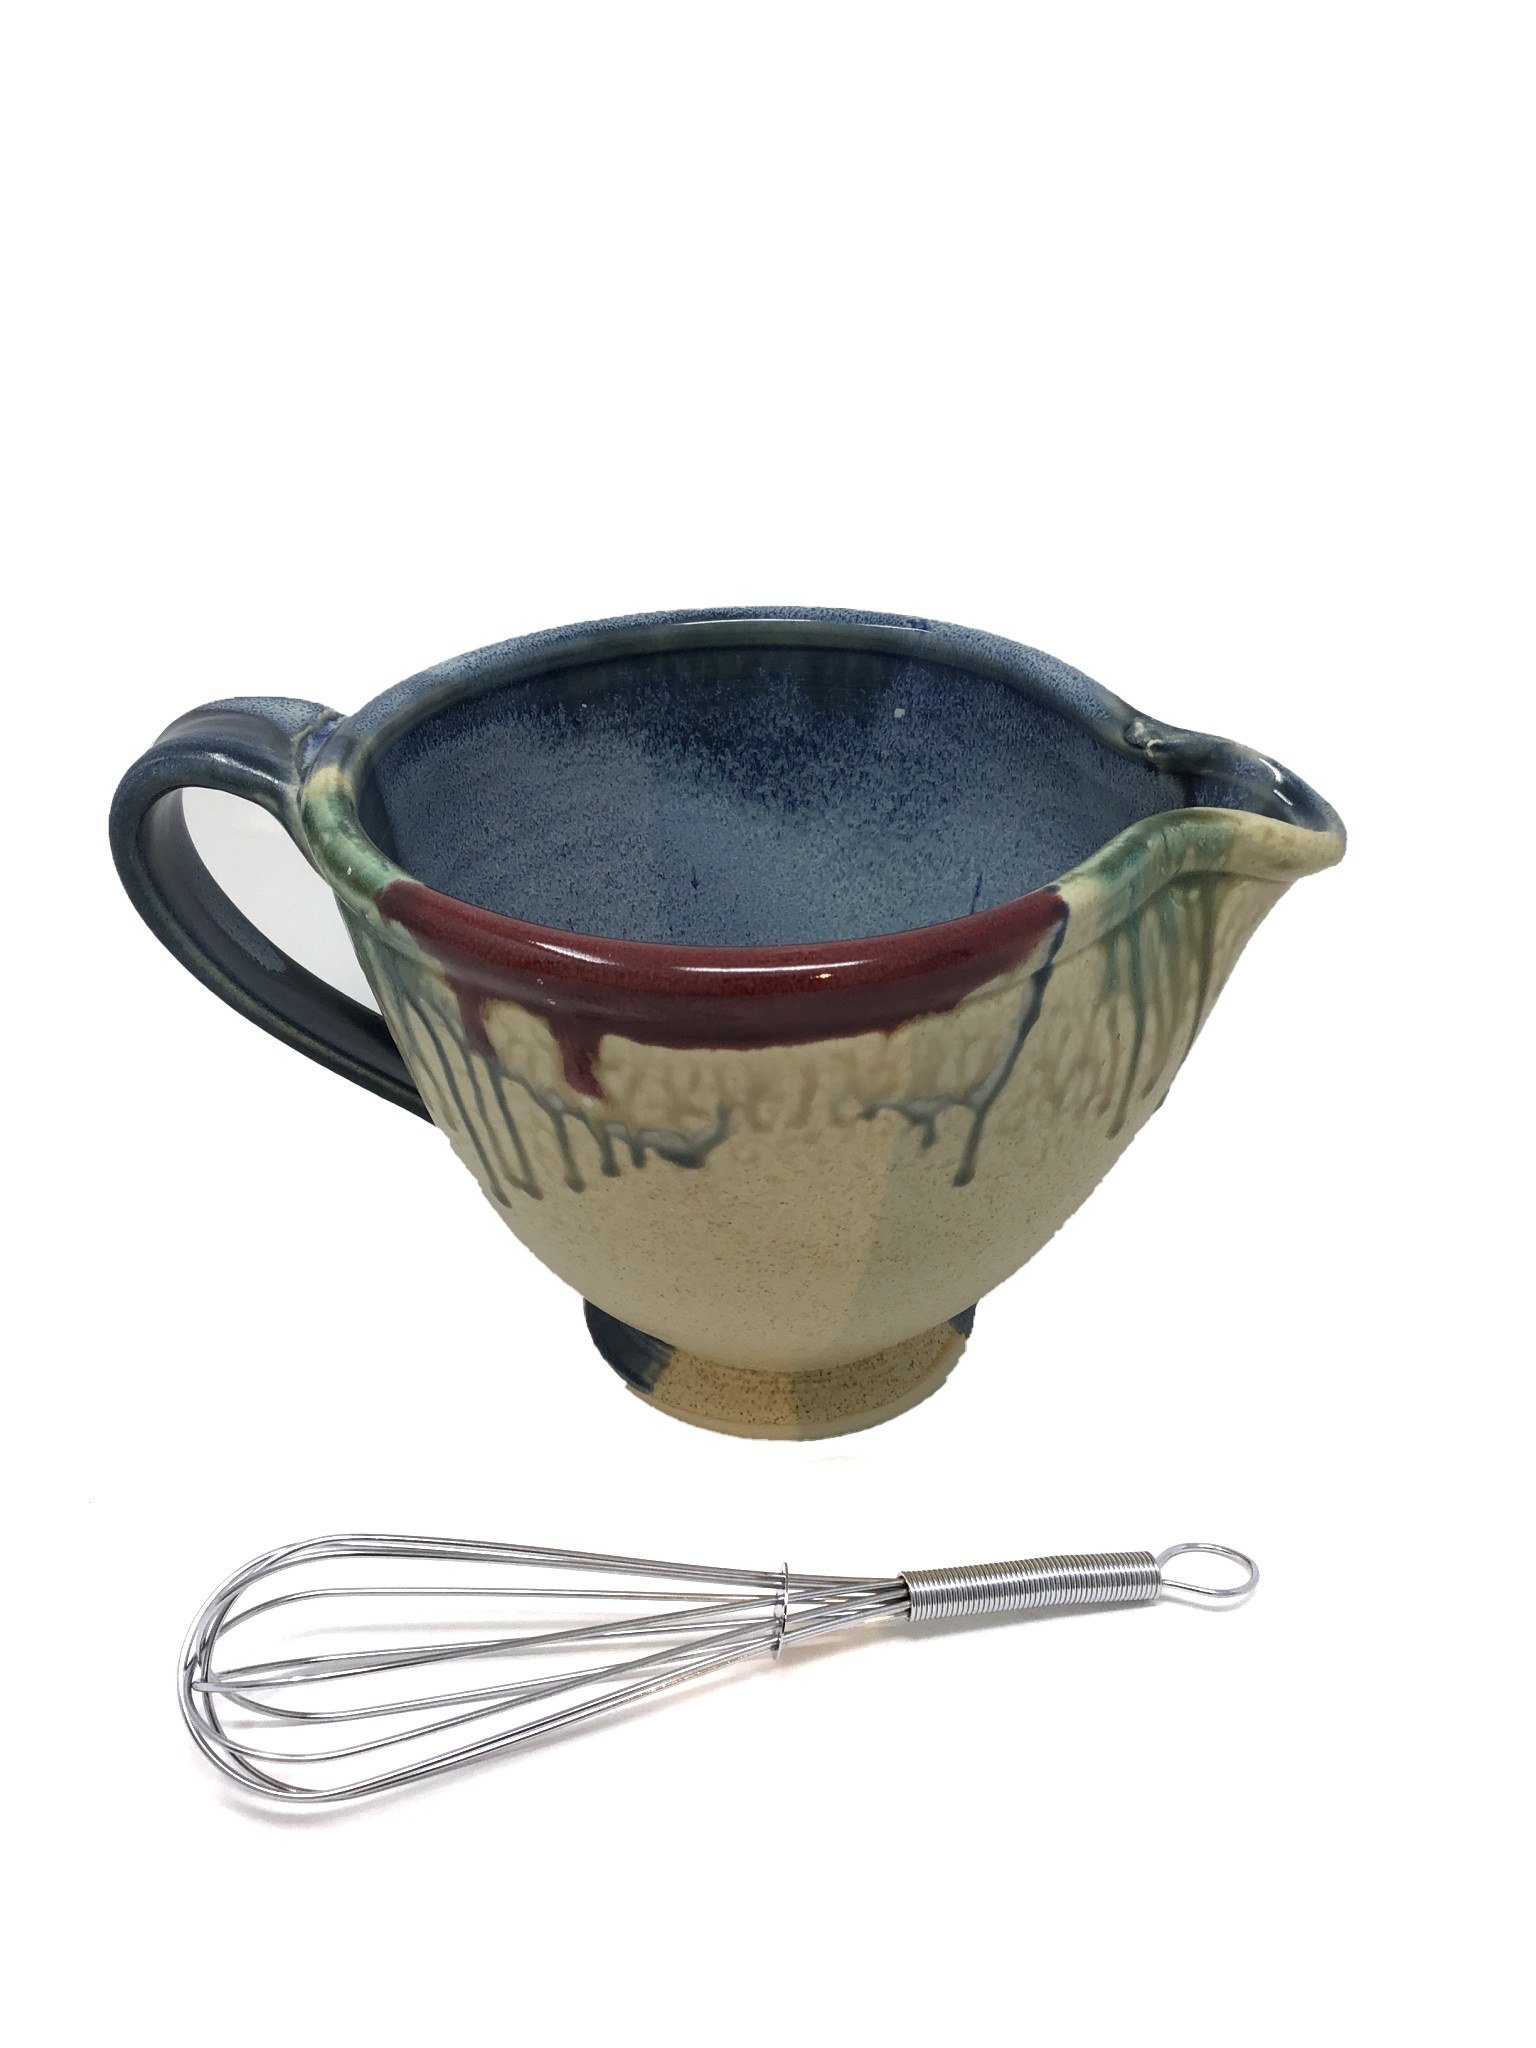 Mixing Bowl with Whisk-4